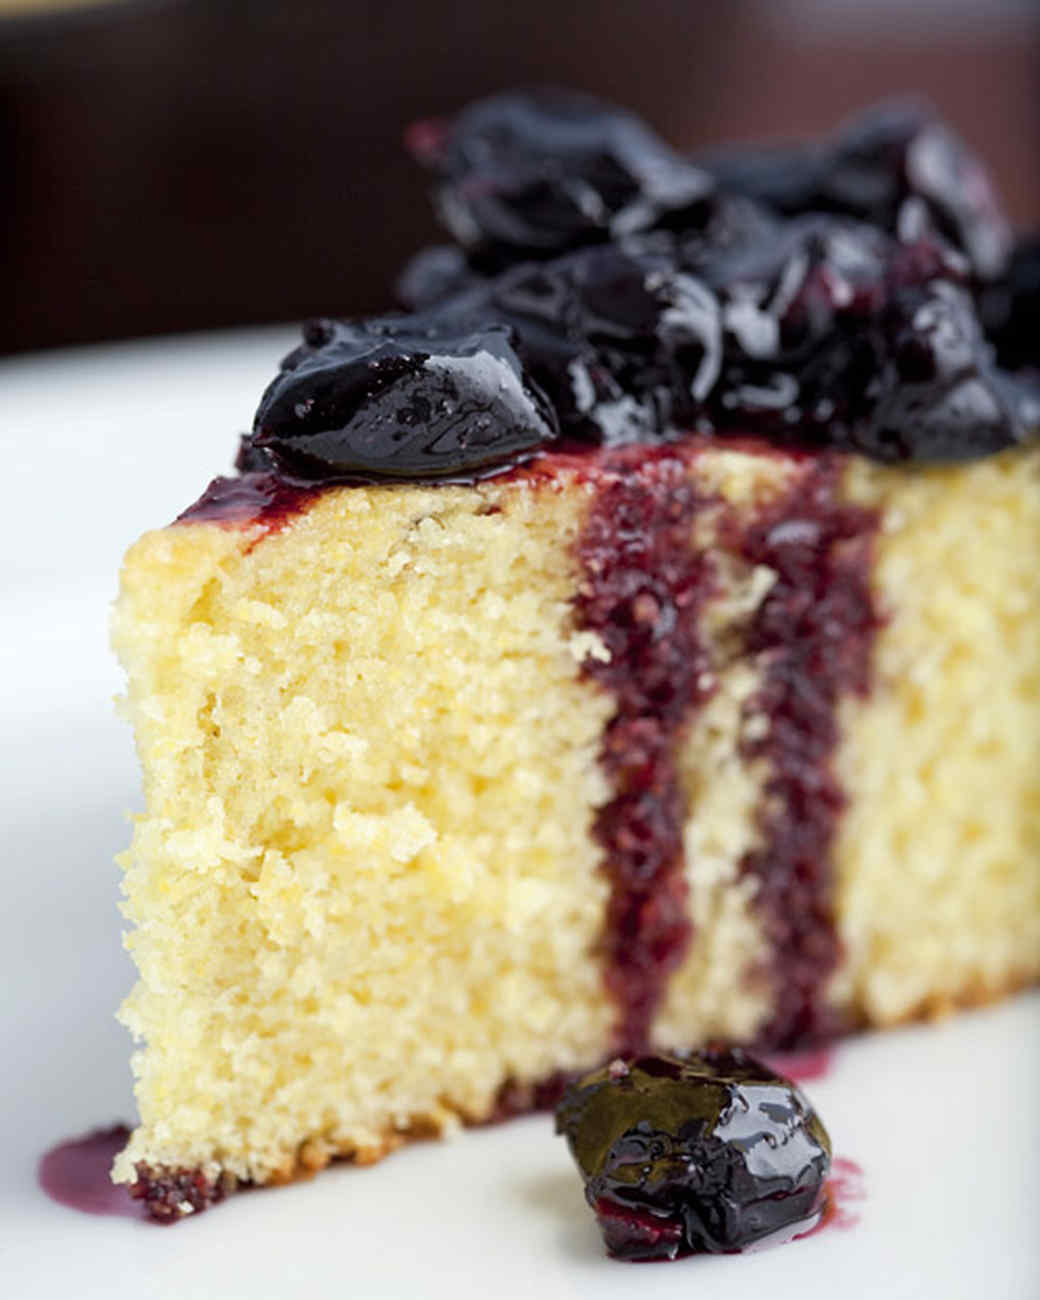 Skillet Corn Cake with Stewed Cherries